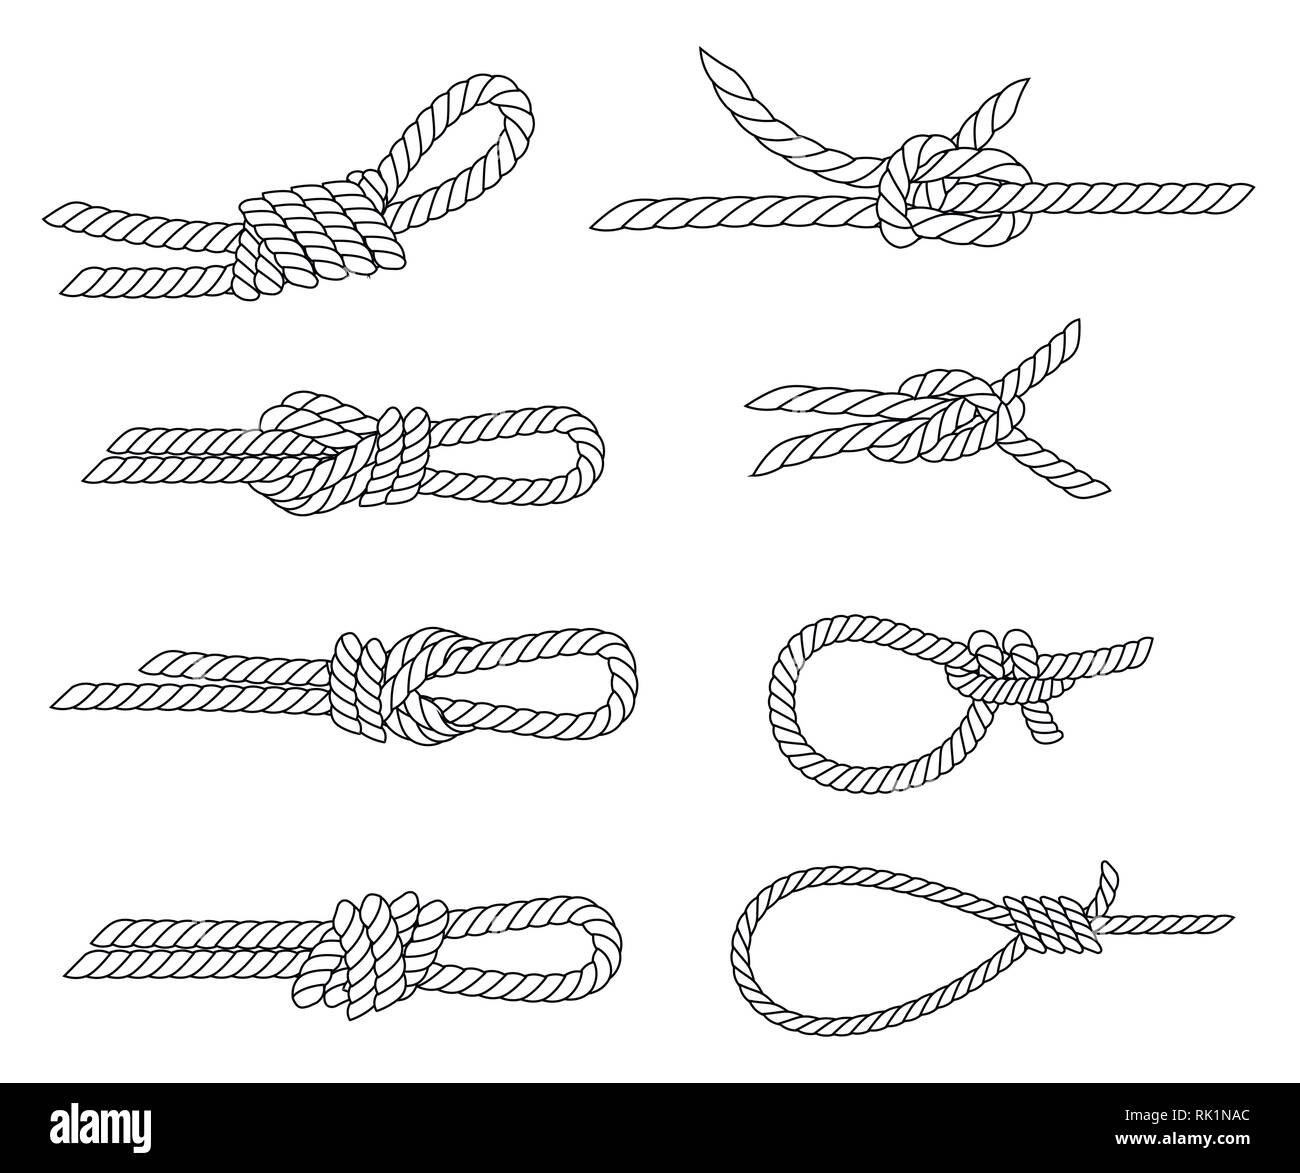 Set of nautical rope knots. Line design. Strong marine rope knots. Flat vector illustration isolated on white background. - Stock Vector